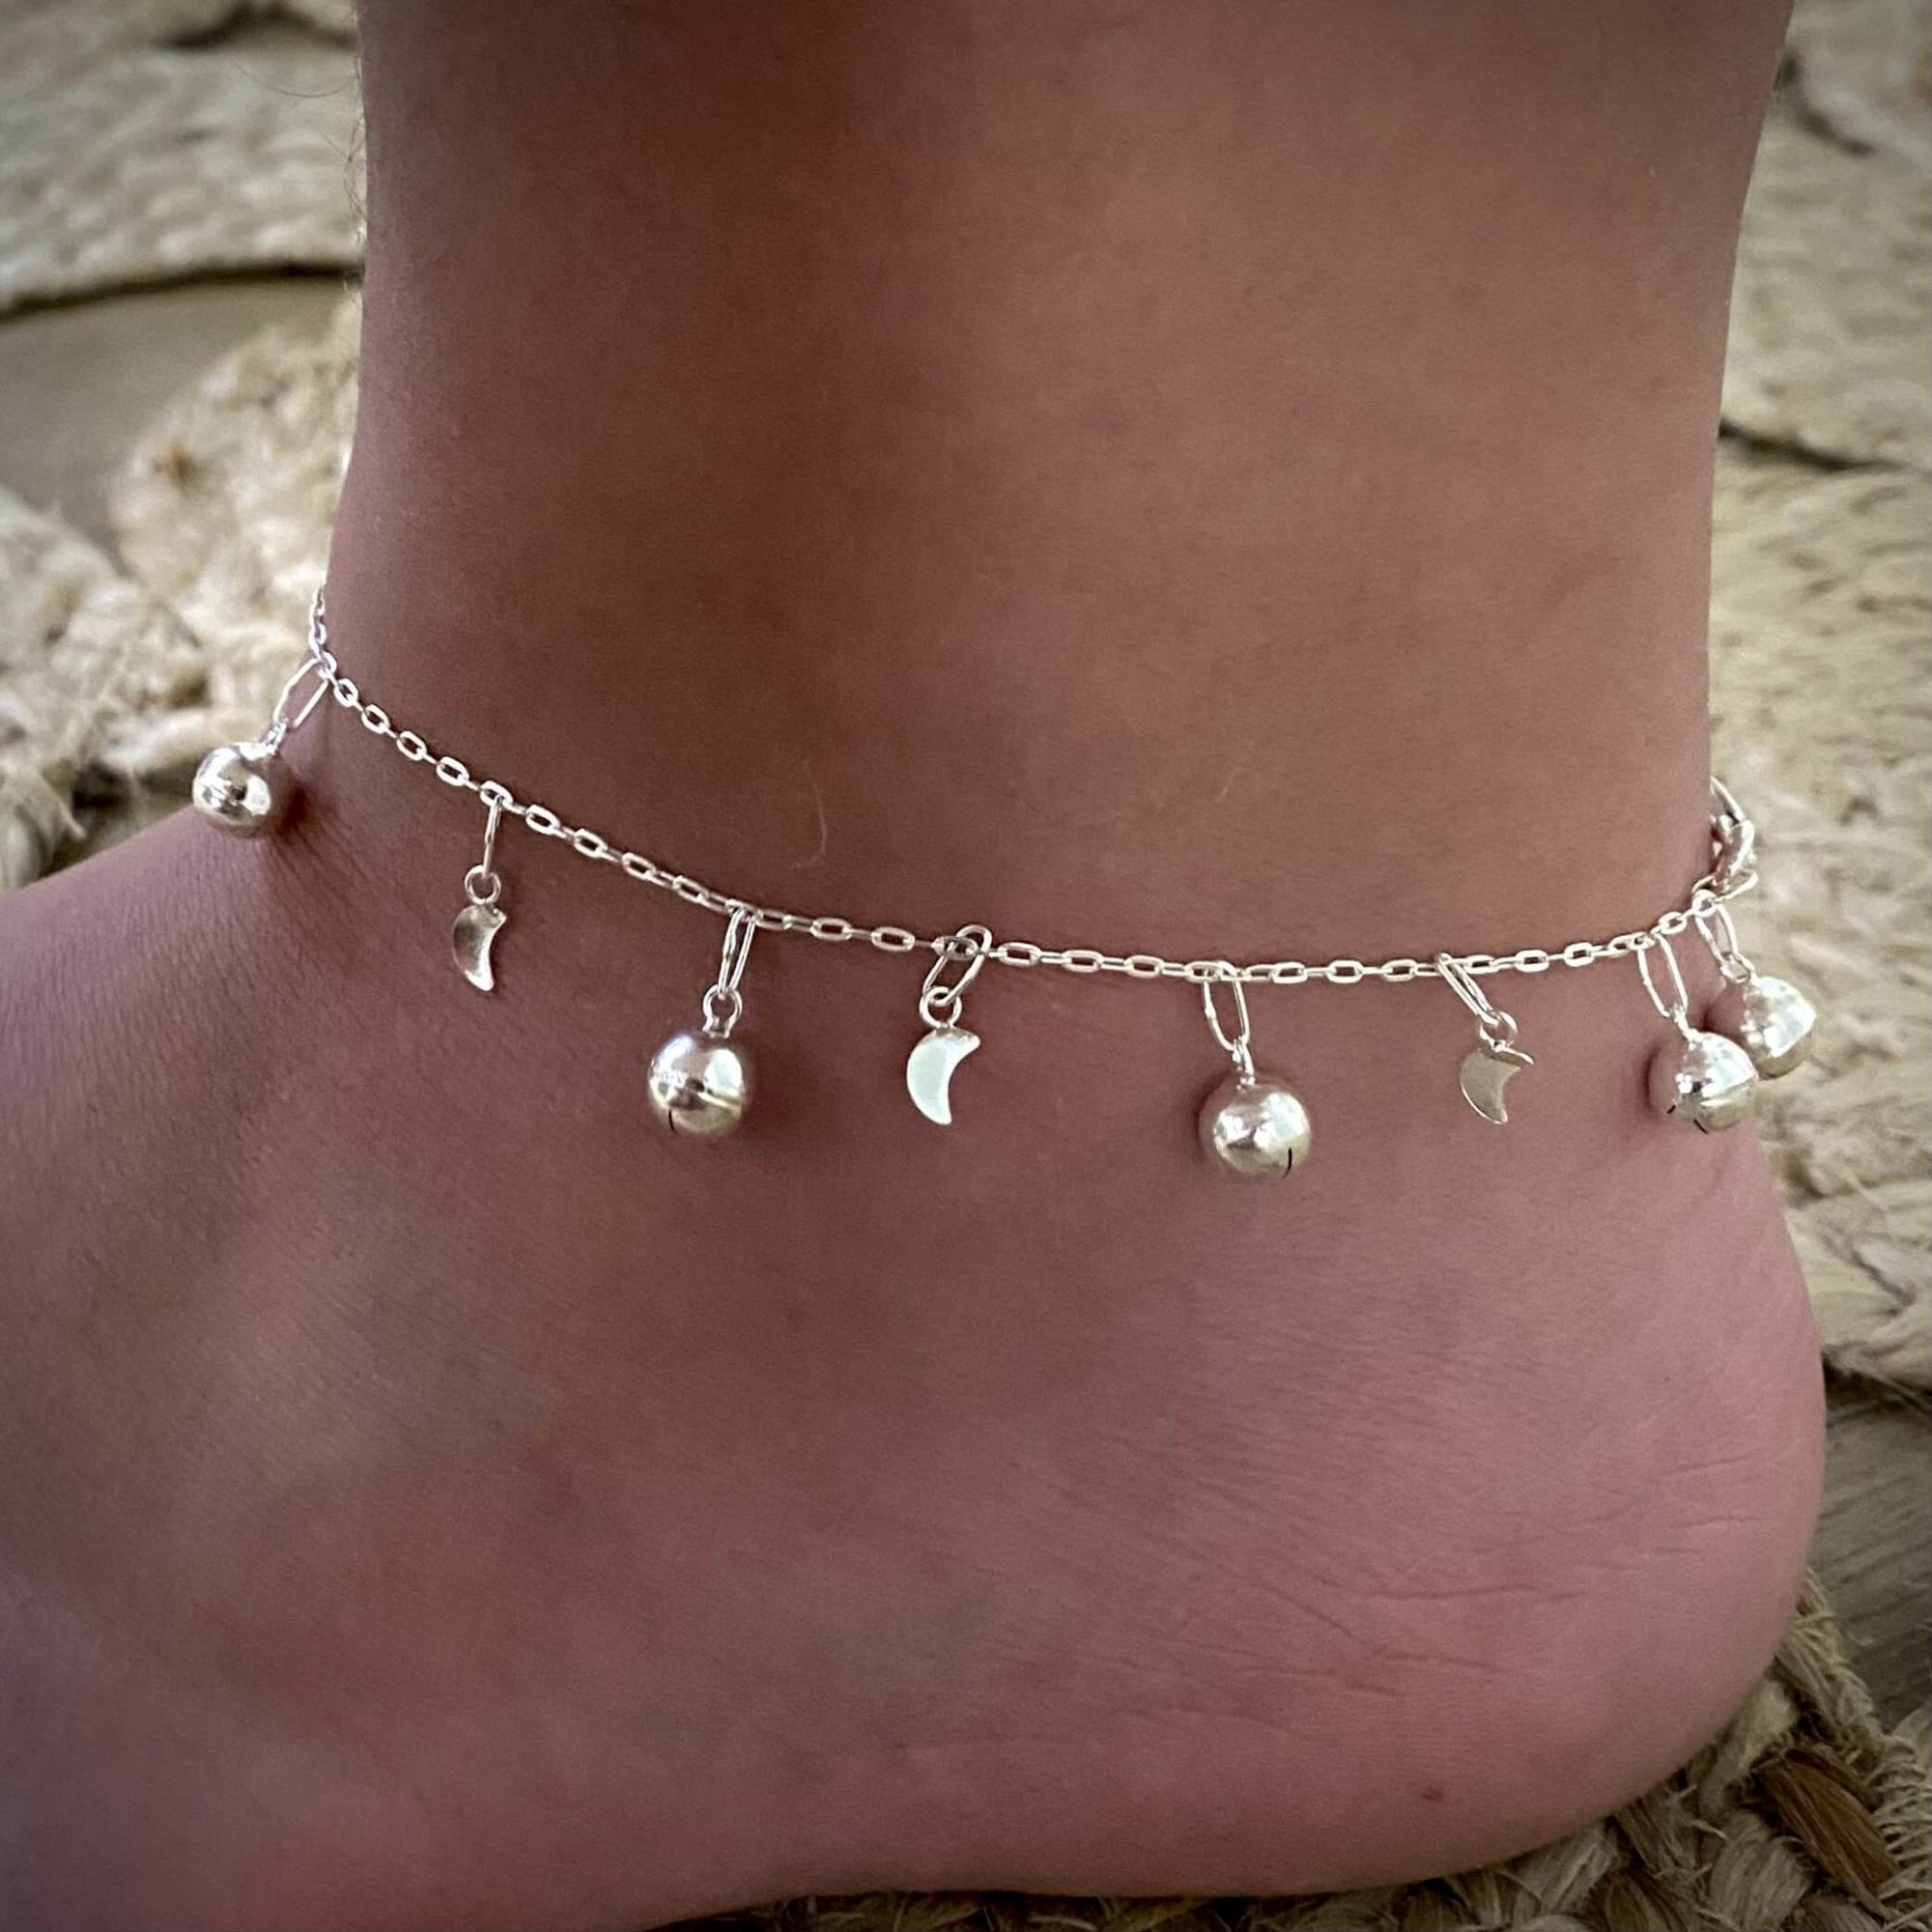 Laihas Bells and Moons Sterling Silver Anklet - Laihas Bohemian Dreaming